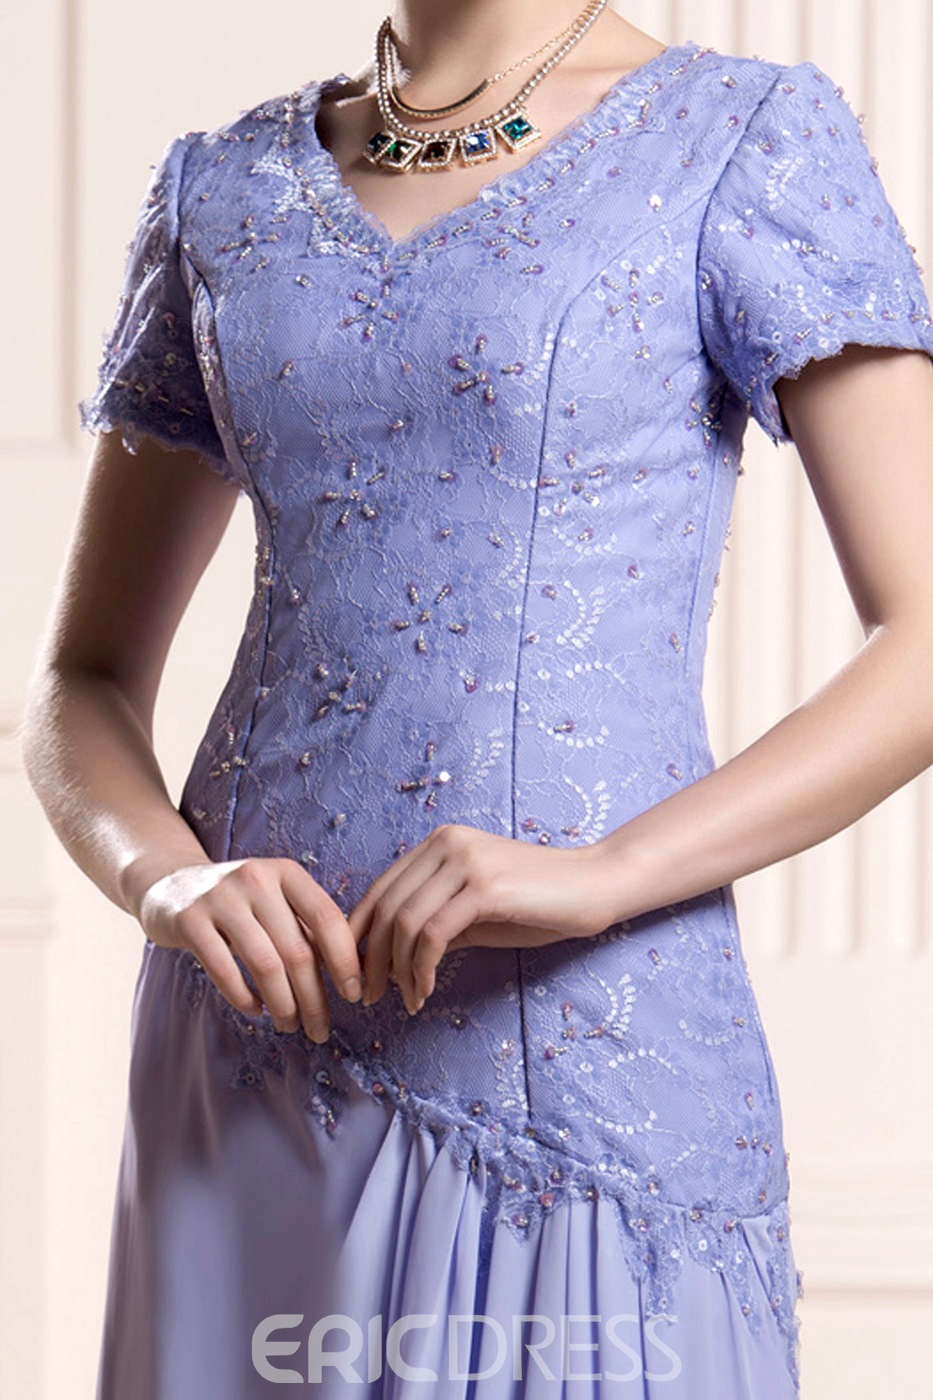 Incredible Lace/Appliques Sheath/Column V-Neck Short-Sleeves Floor-Length Mother of the Bride Dress